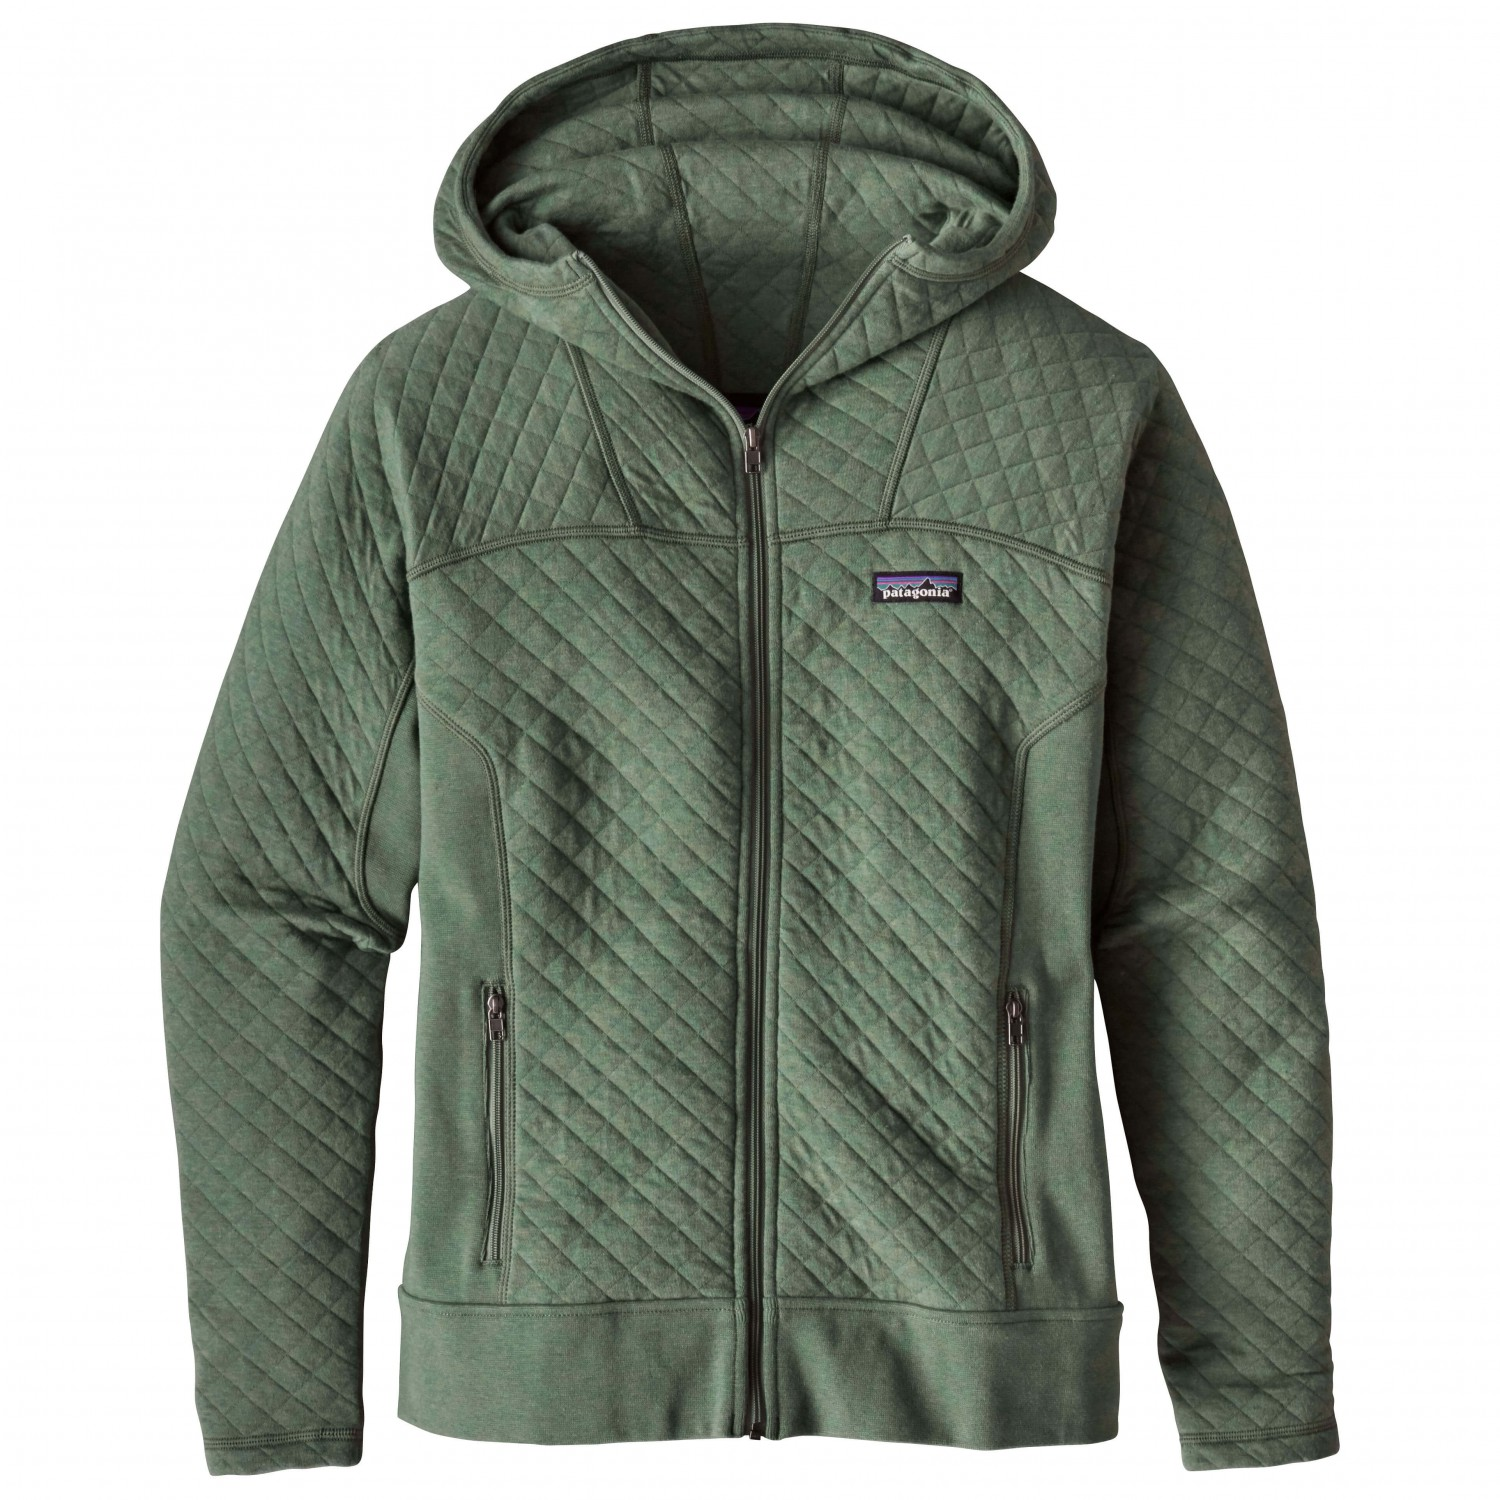 Patagonia Cotton Quilt Hoody - Casual Jacket Women's